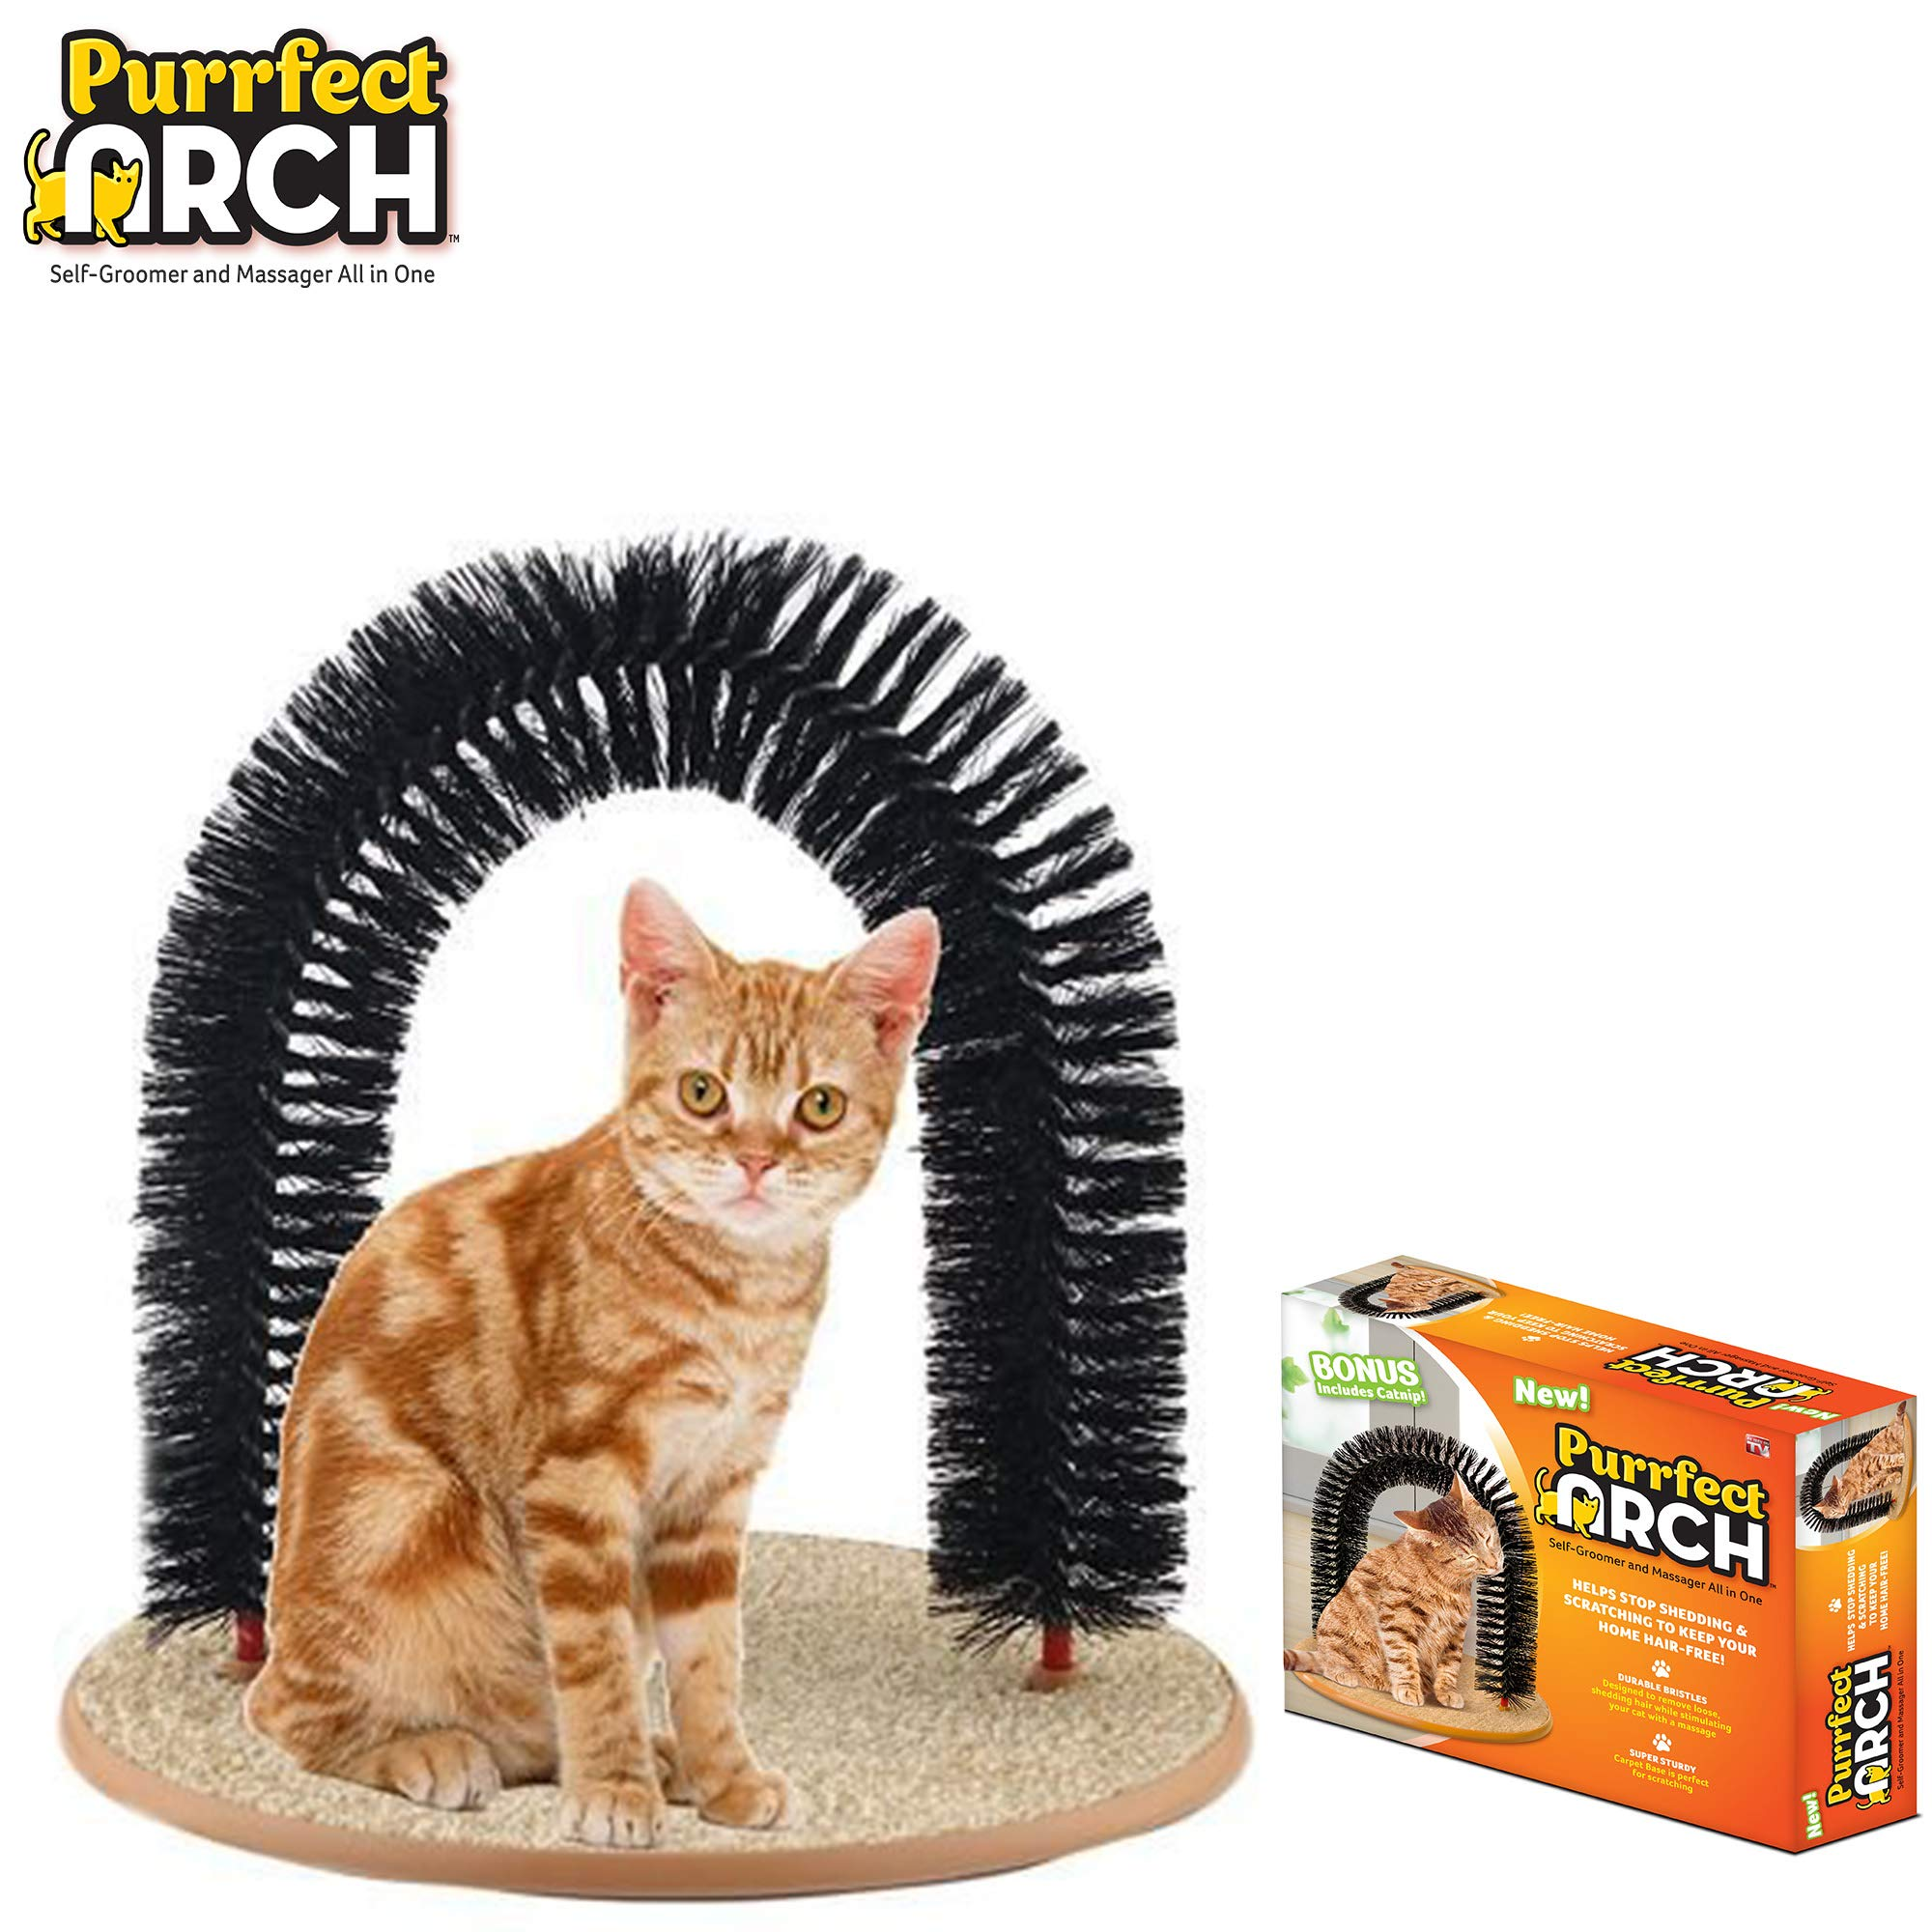 Purrfect Arch Self Grooming and Massaging Cat Toy- Reduce Shedding & Scratching  To Keep Your Home Fur Free! by Purrfect Arch